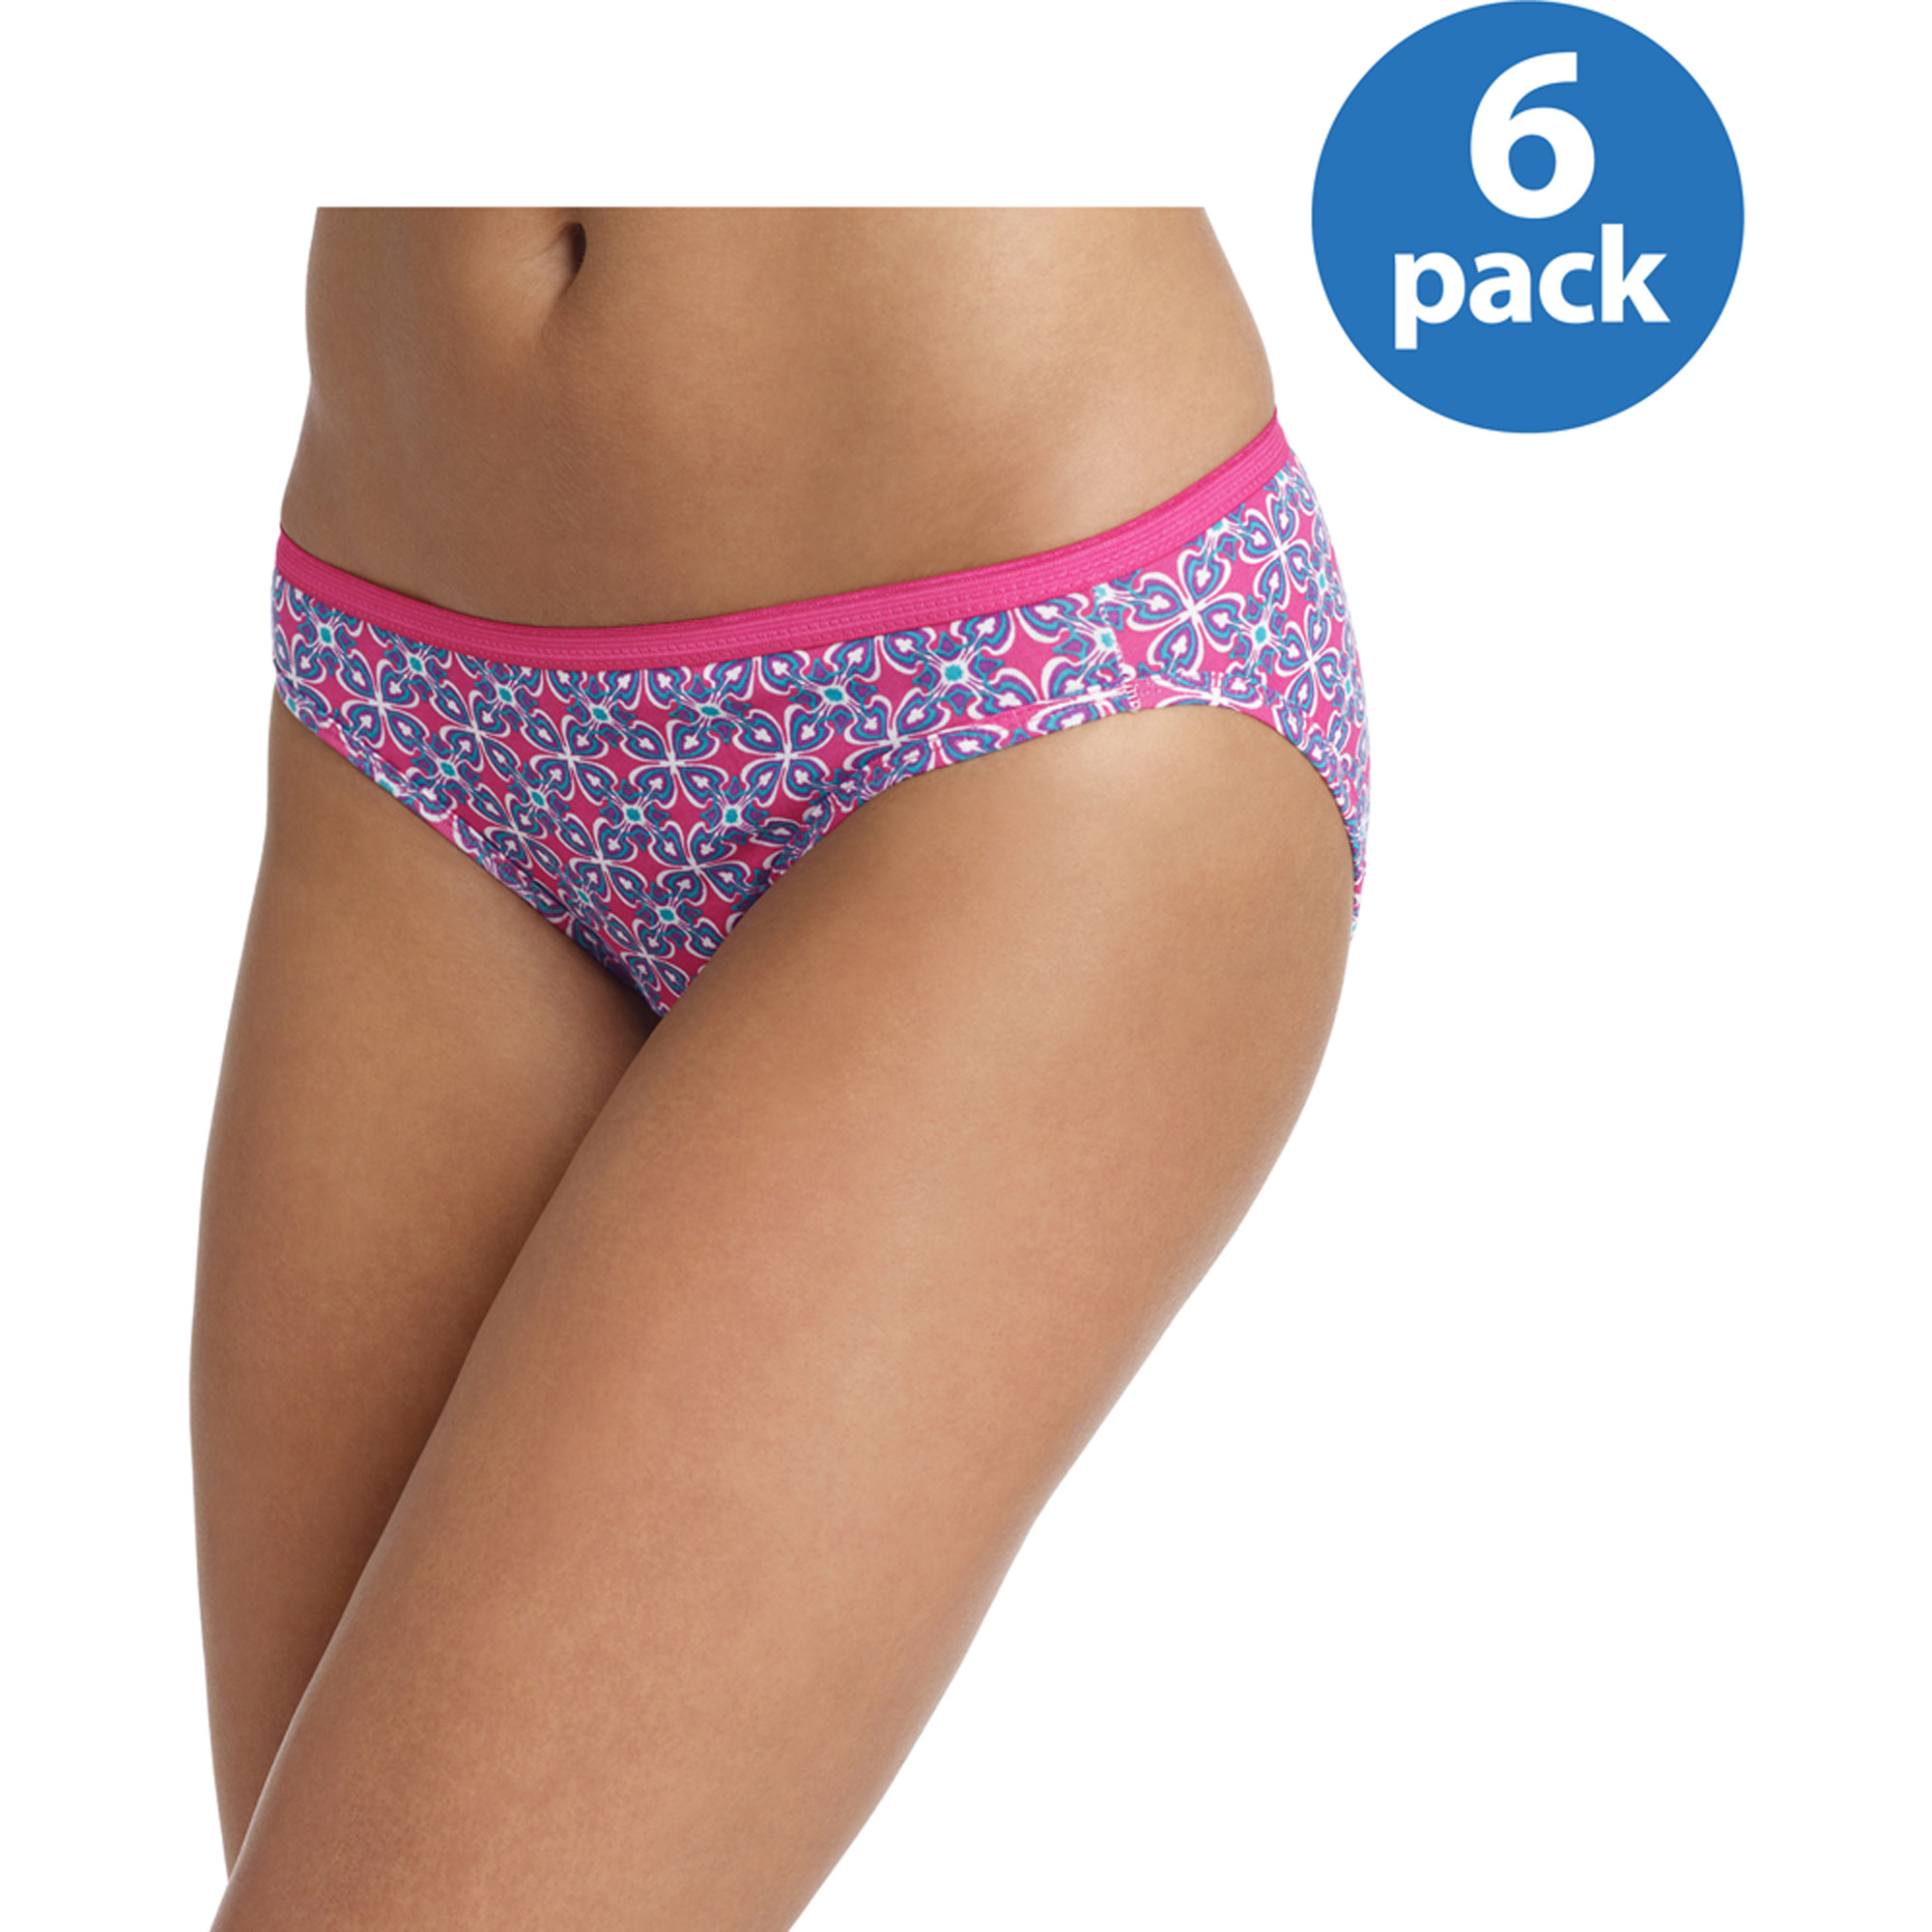 Hanes - Women's Cotton Bikini Panties, 6-Pack